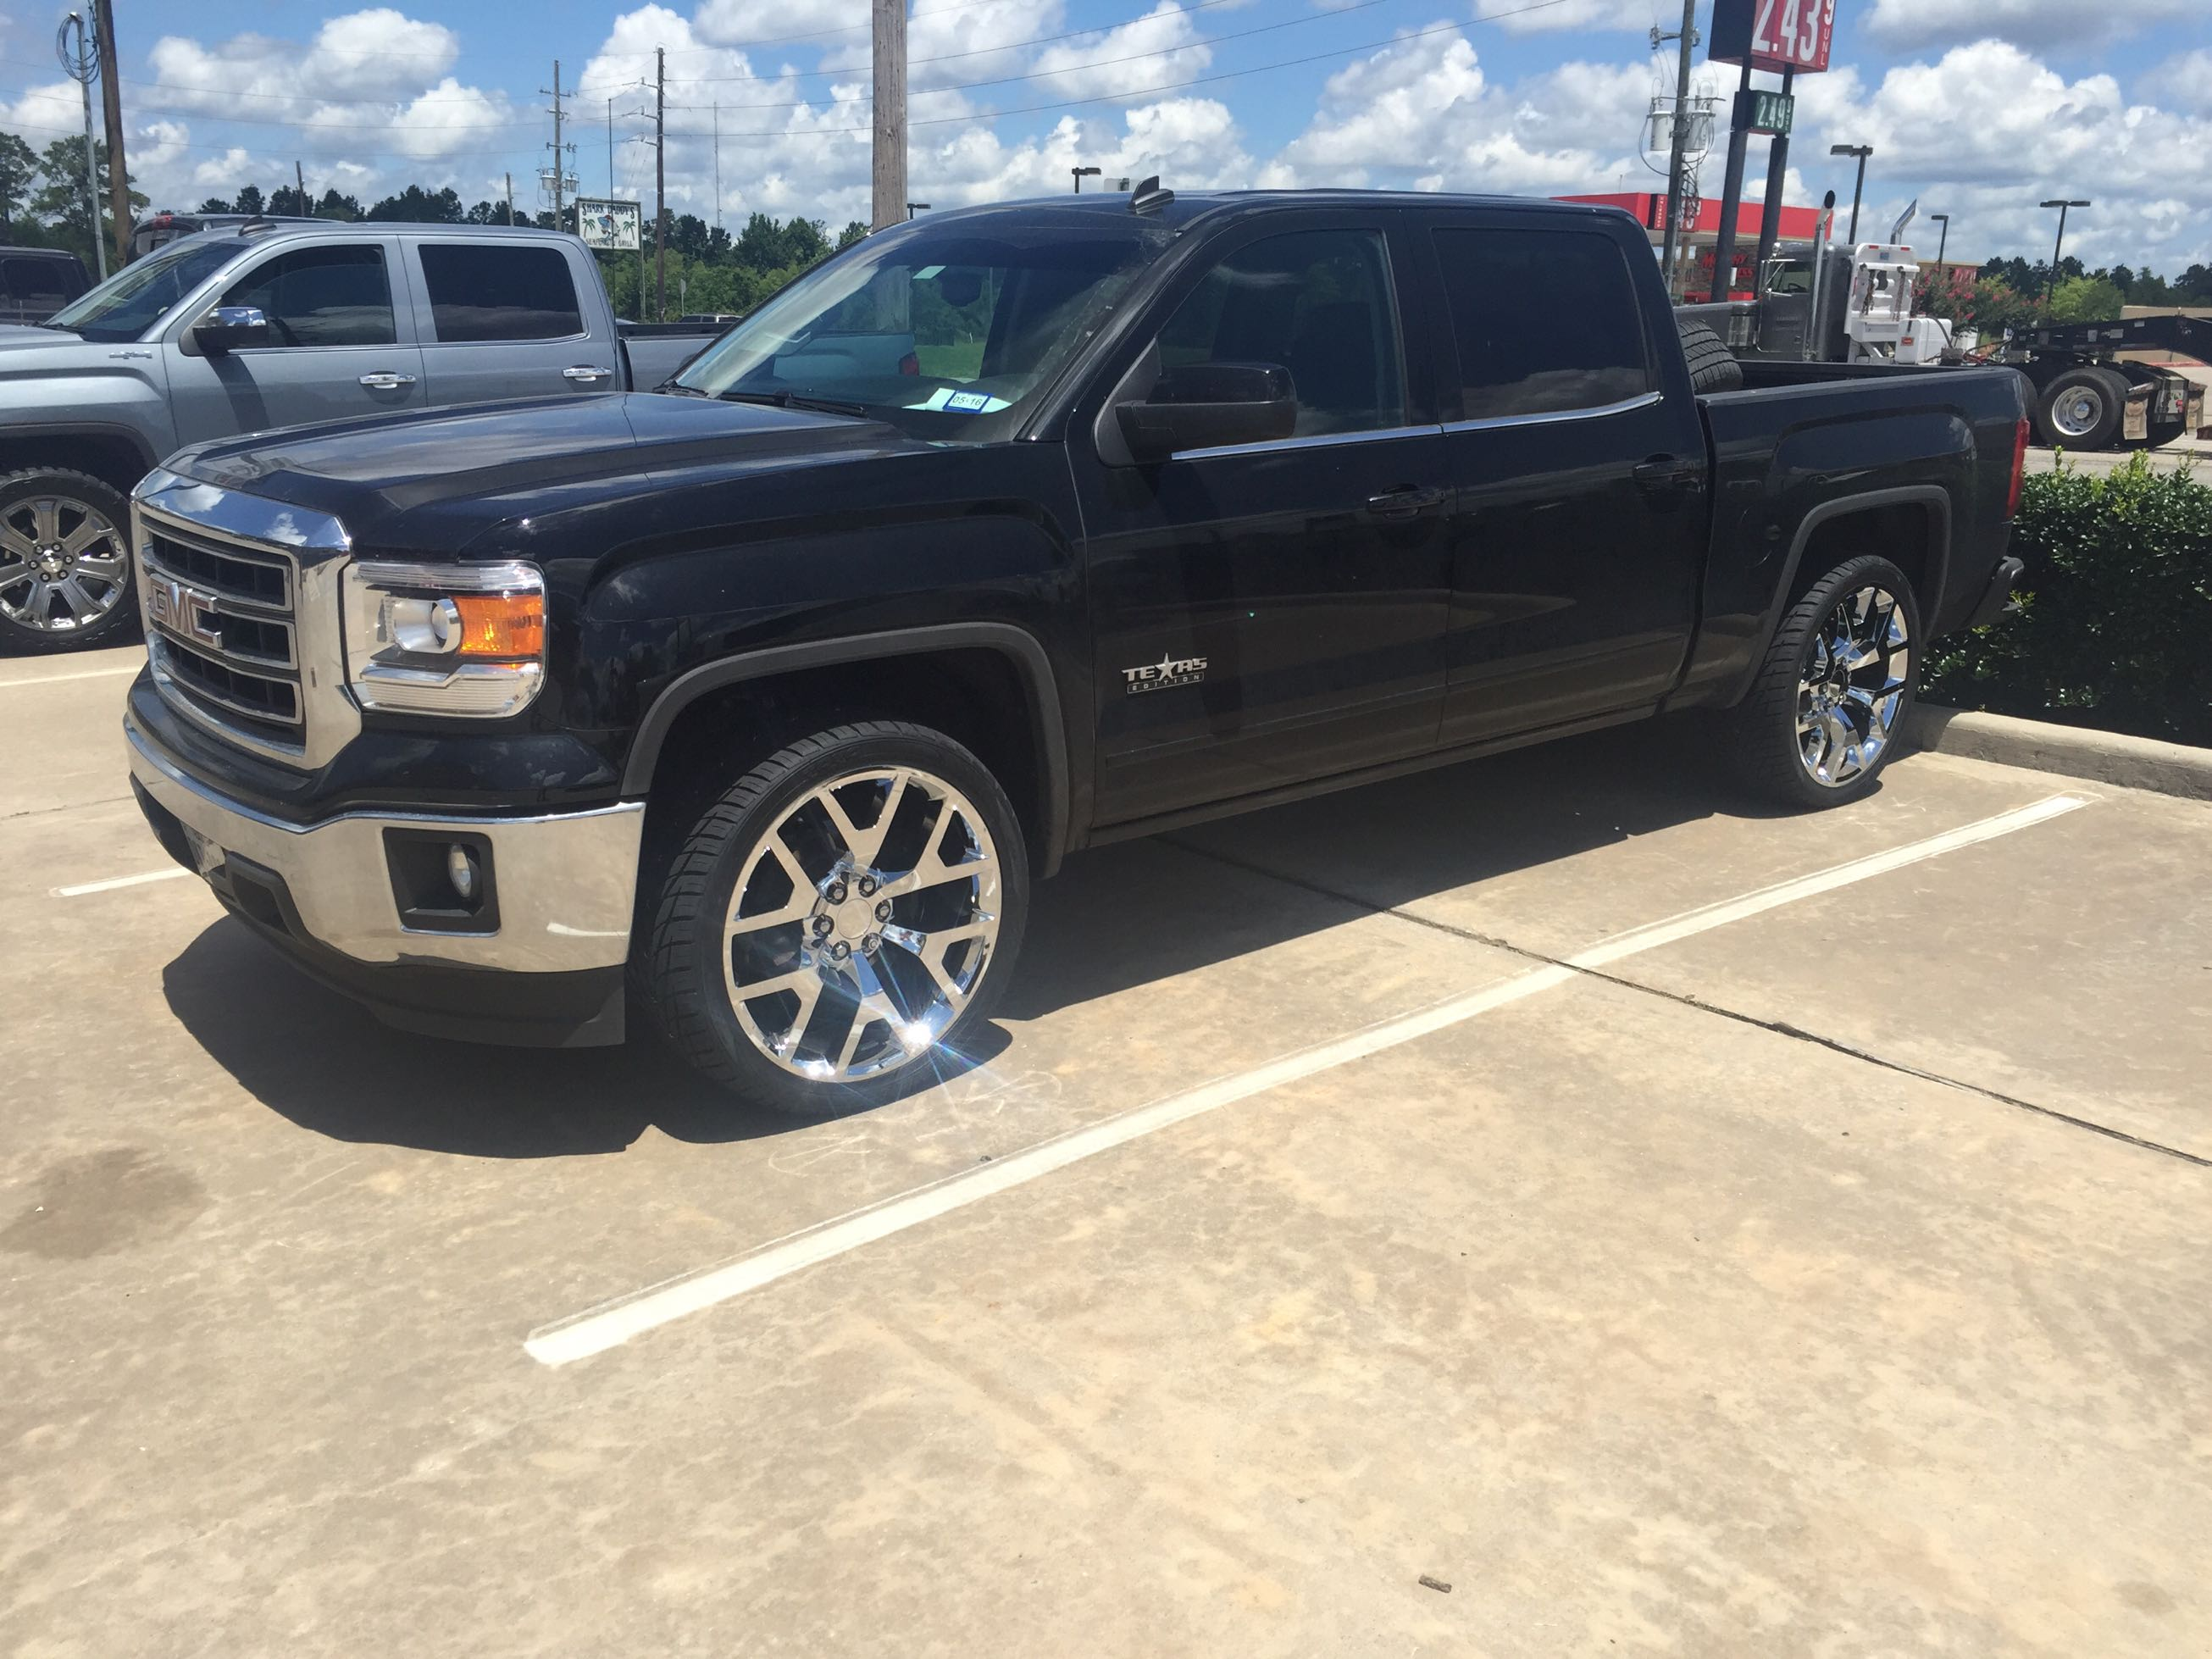 24 2014 gmc denali replica wheels for sale in magnolia tx 5miles buy and sell. Black Bedroom Furniture Sets. Home Design Ideas